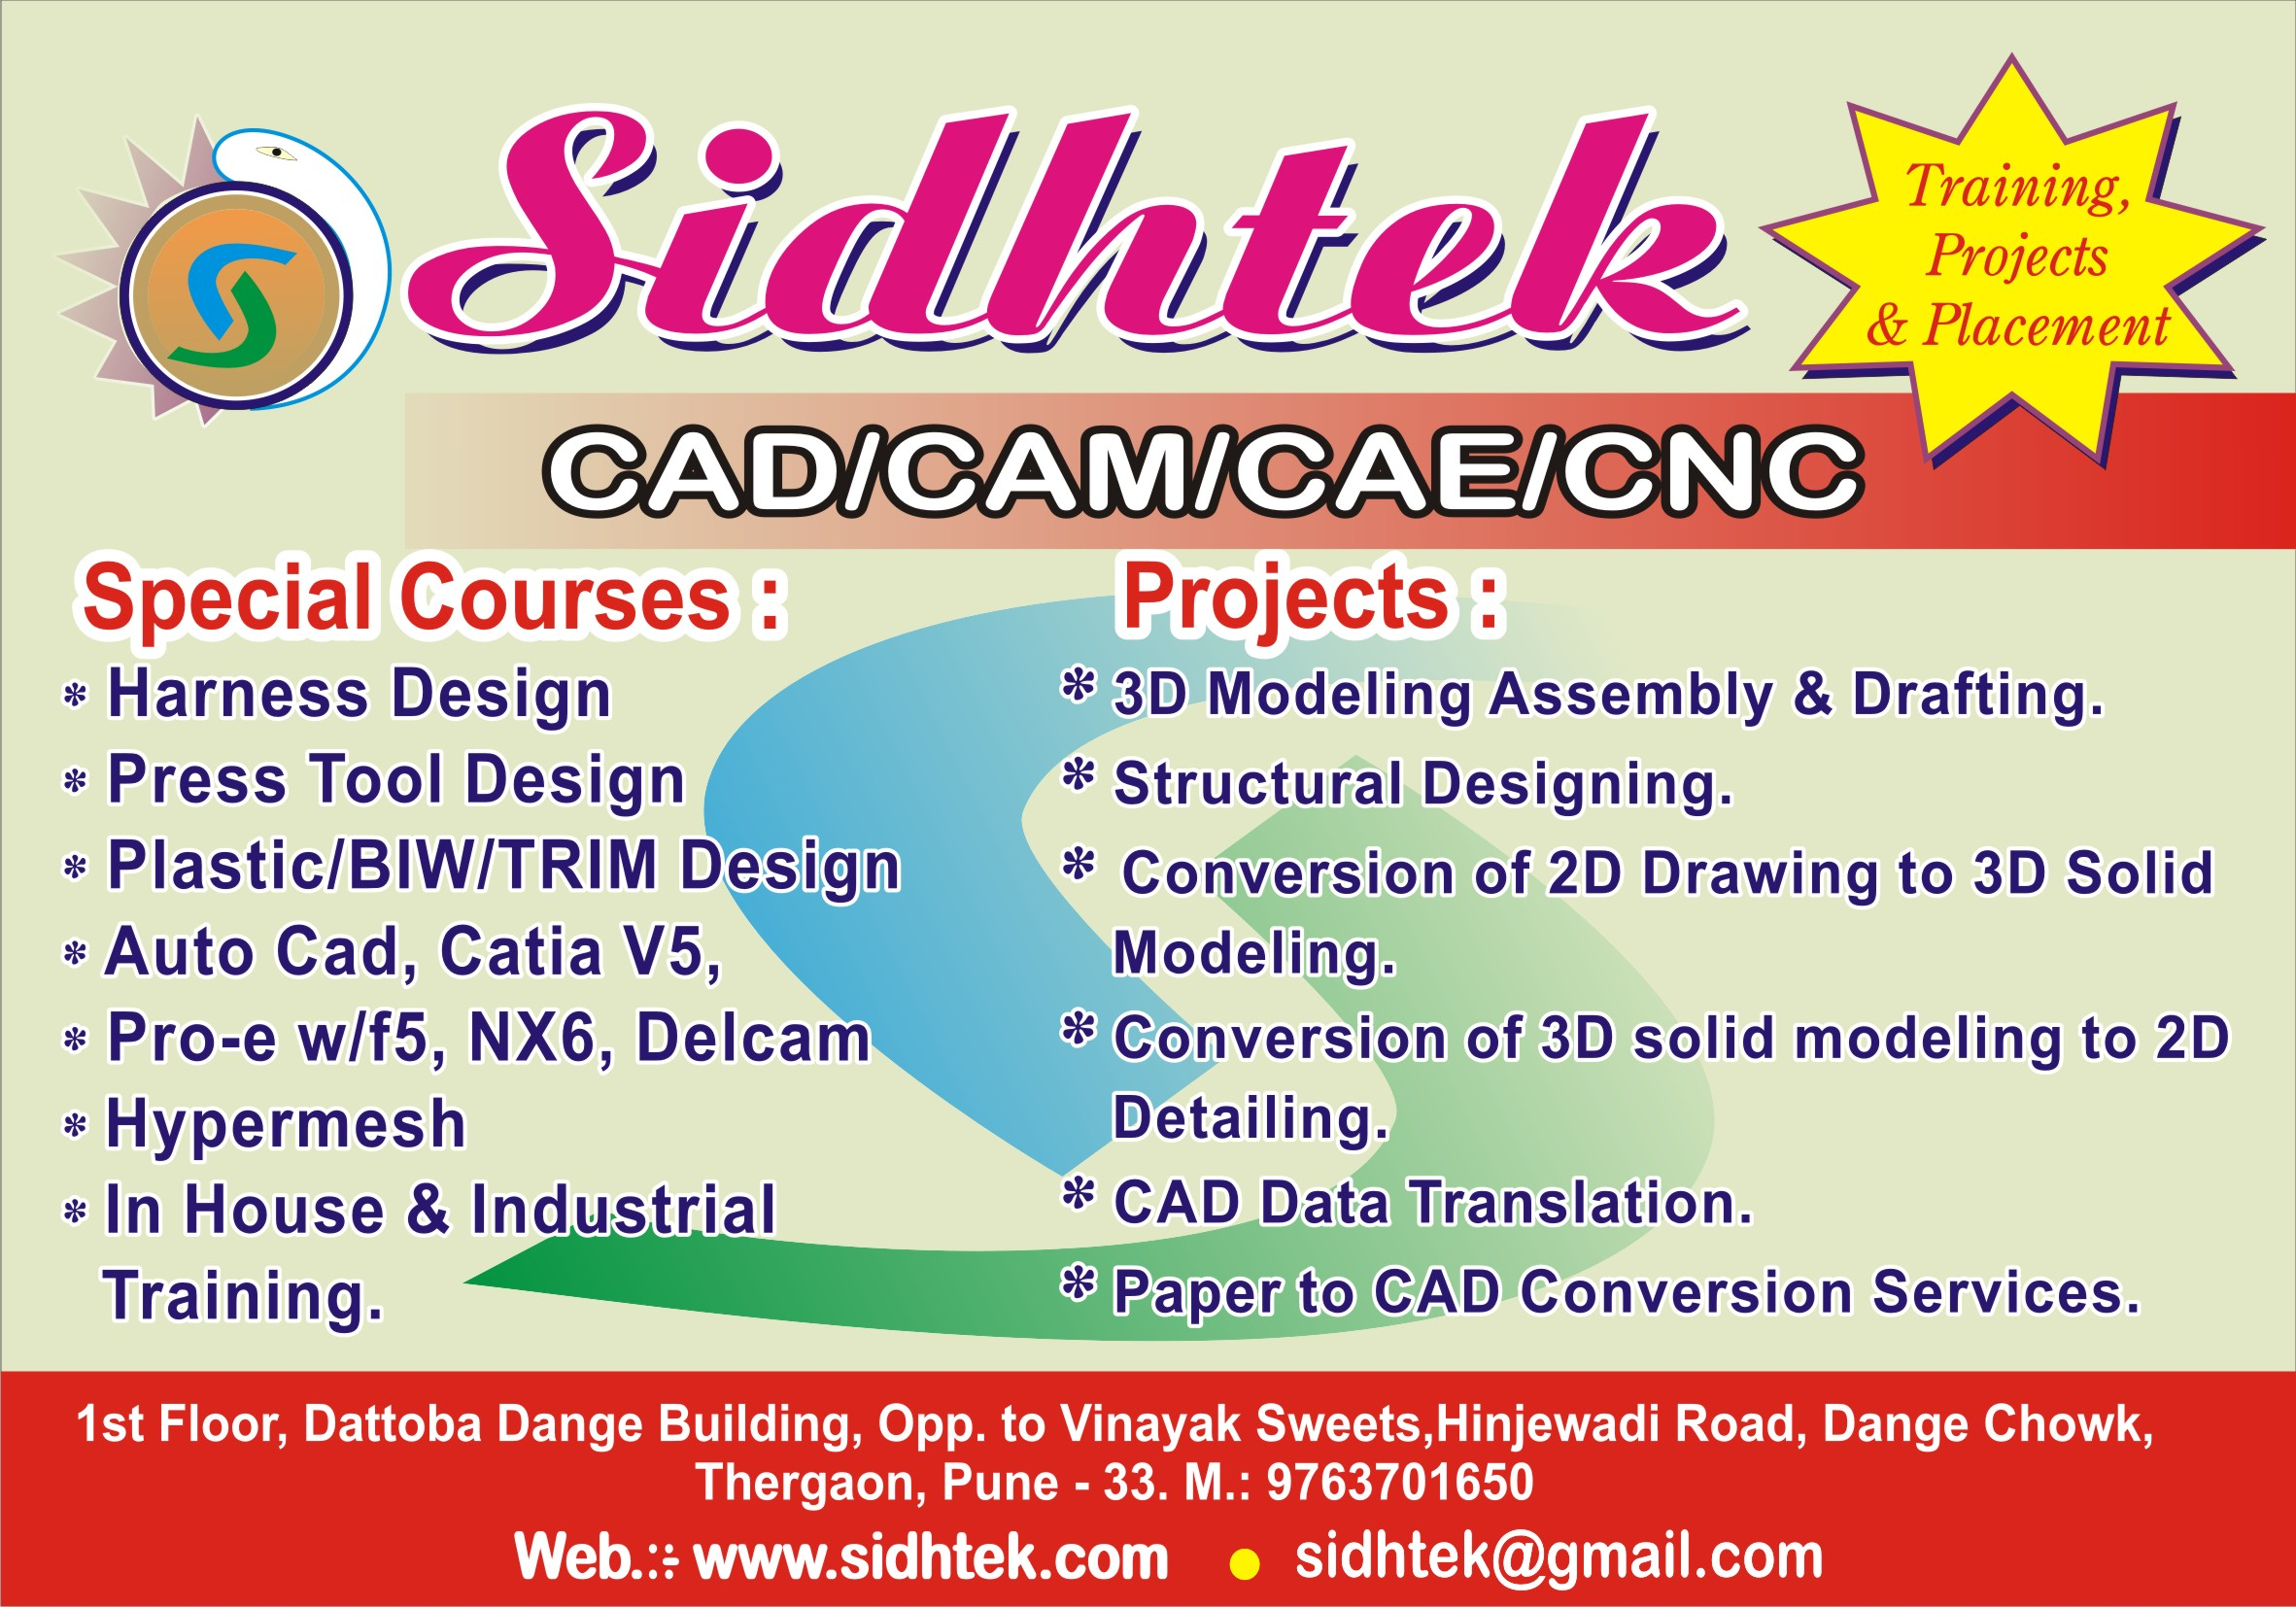 Catia training in pune by sidhtek chinchwad east rdafkpaper ad sidhtekg xflitez Images